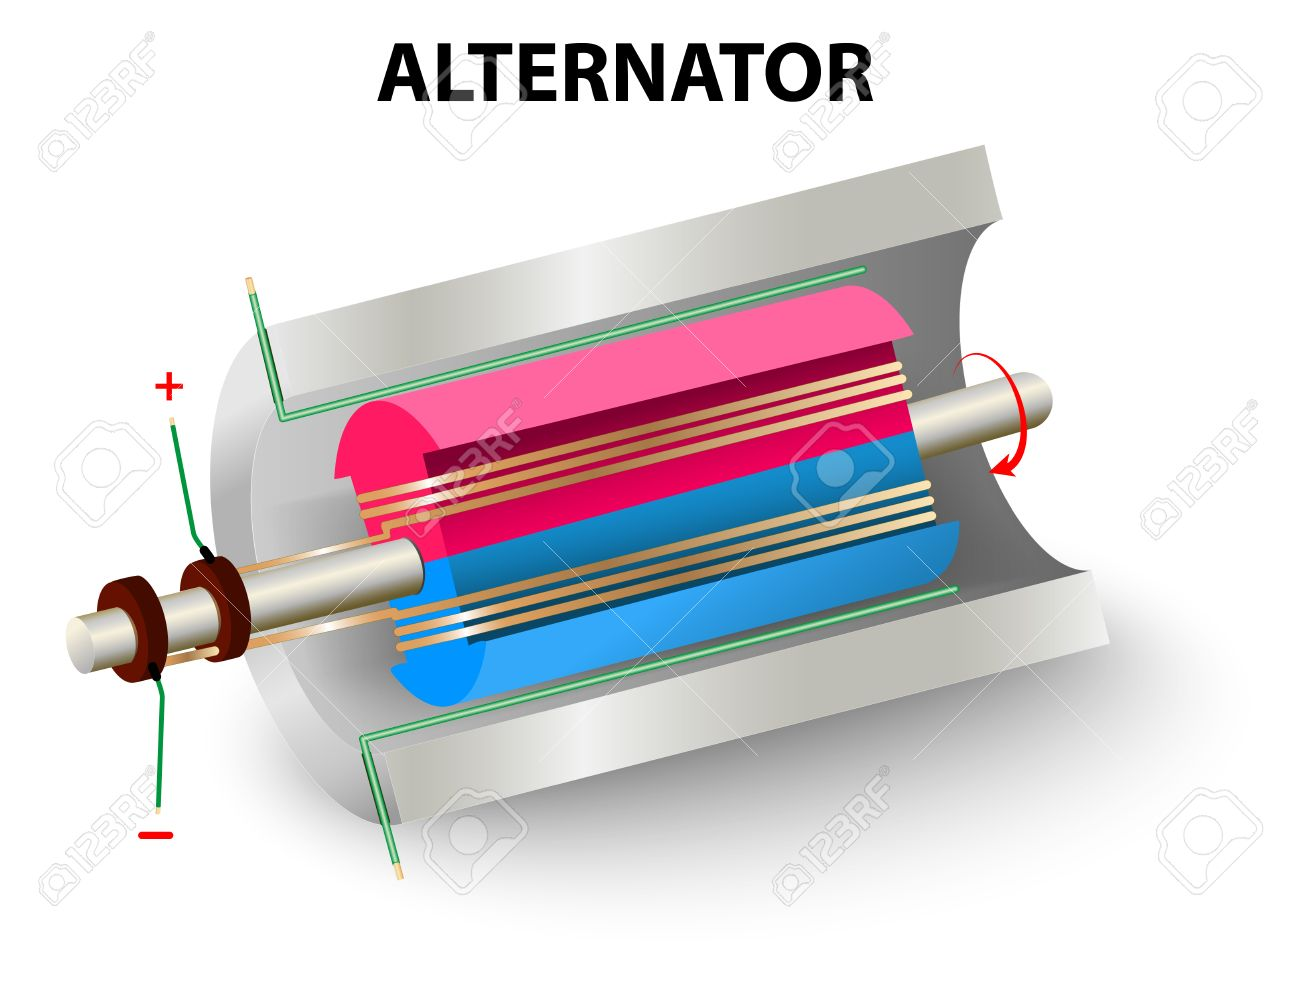 diagram of a simple alternator rotor and stator magnetic field rh 123rf com Ford 3 Wire Alternator Diagram Alternator Wiring Diagram